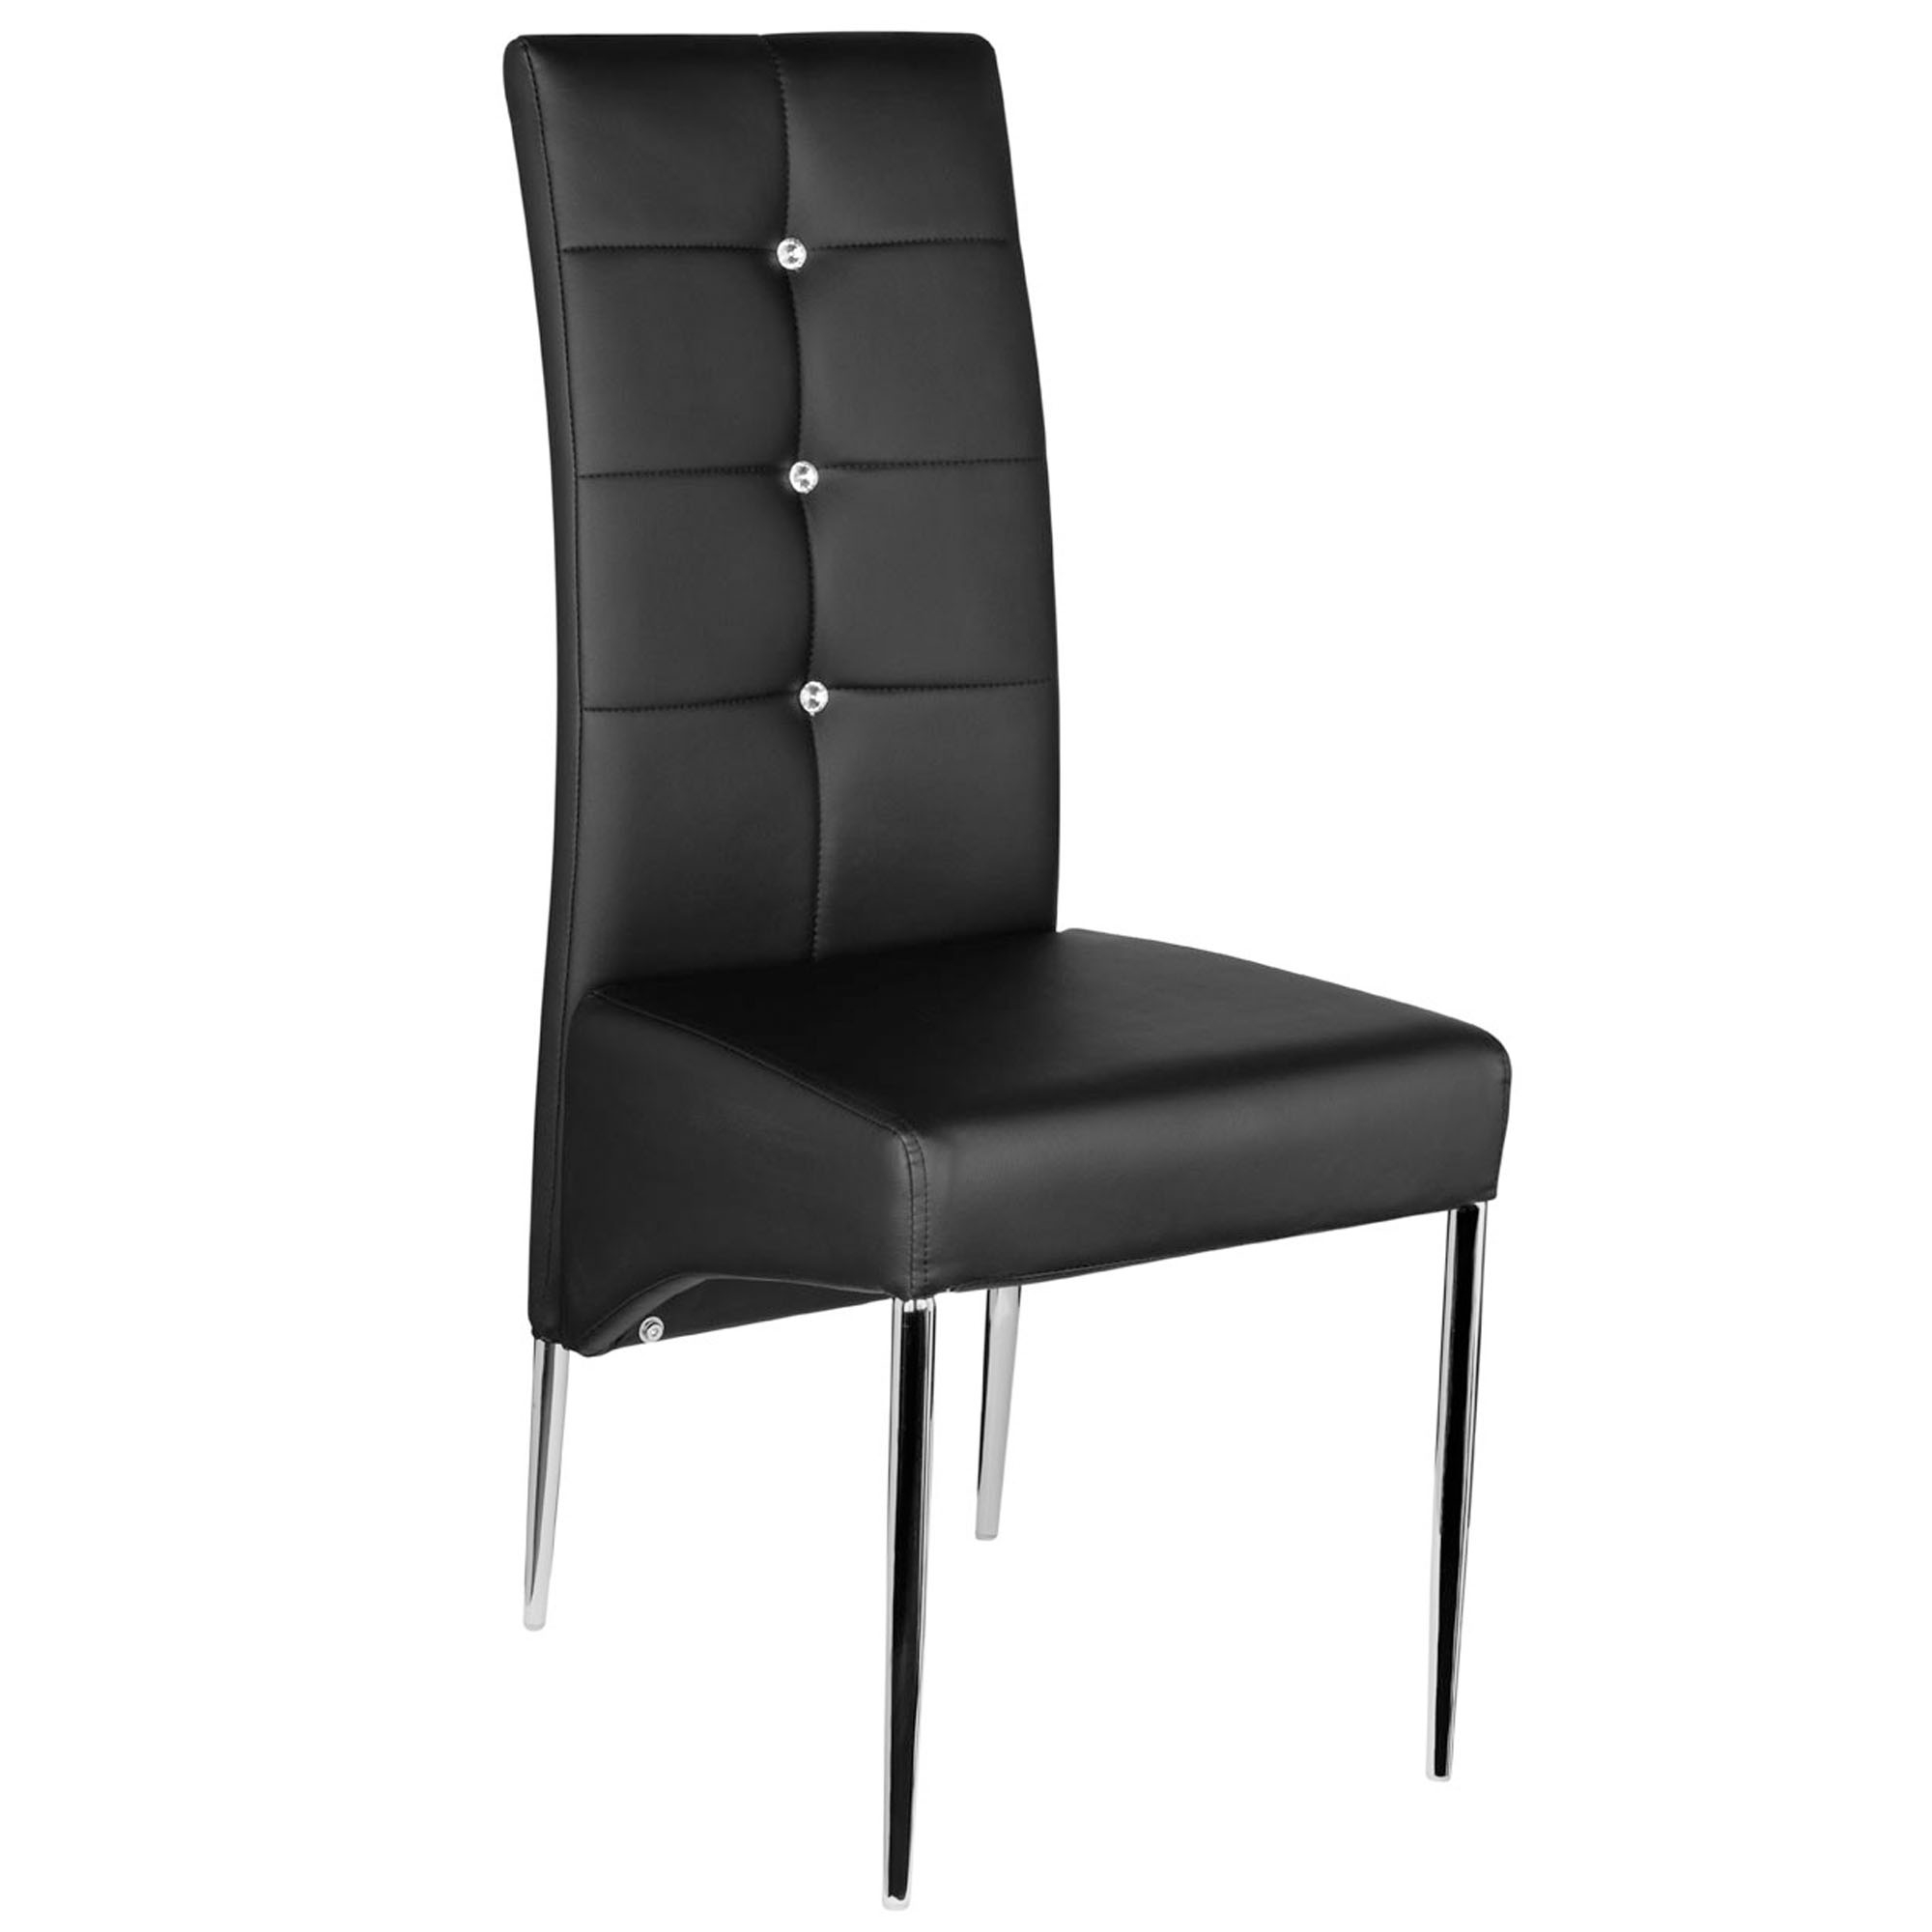 Awesome Black Dining Chair Unemploymentrelief Wooden Chair Designs For Living Room Unemploymentrelieforg